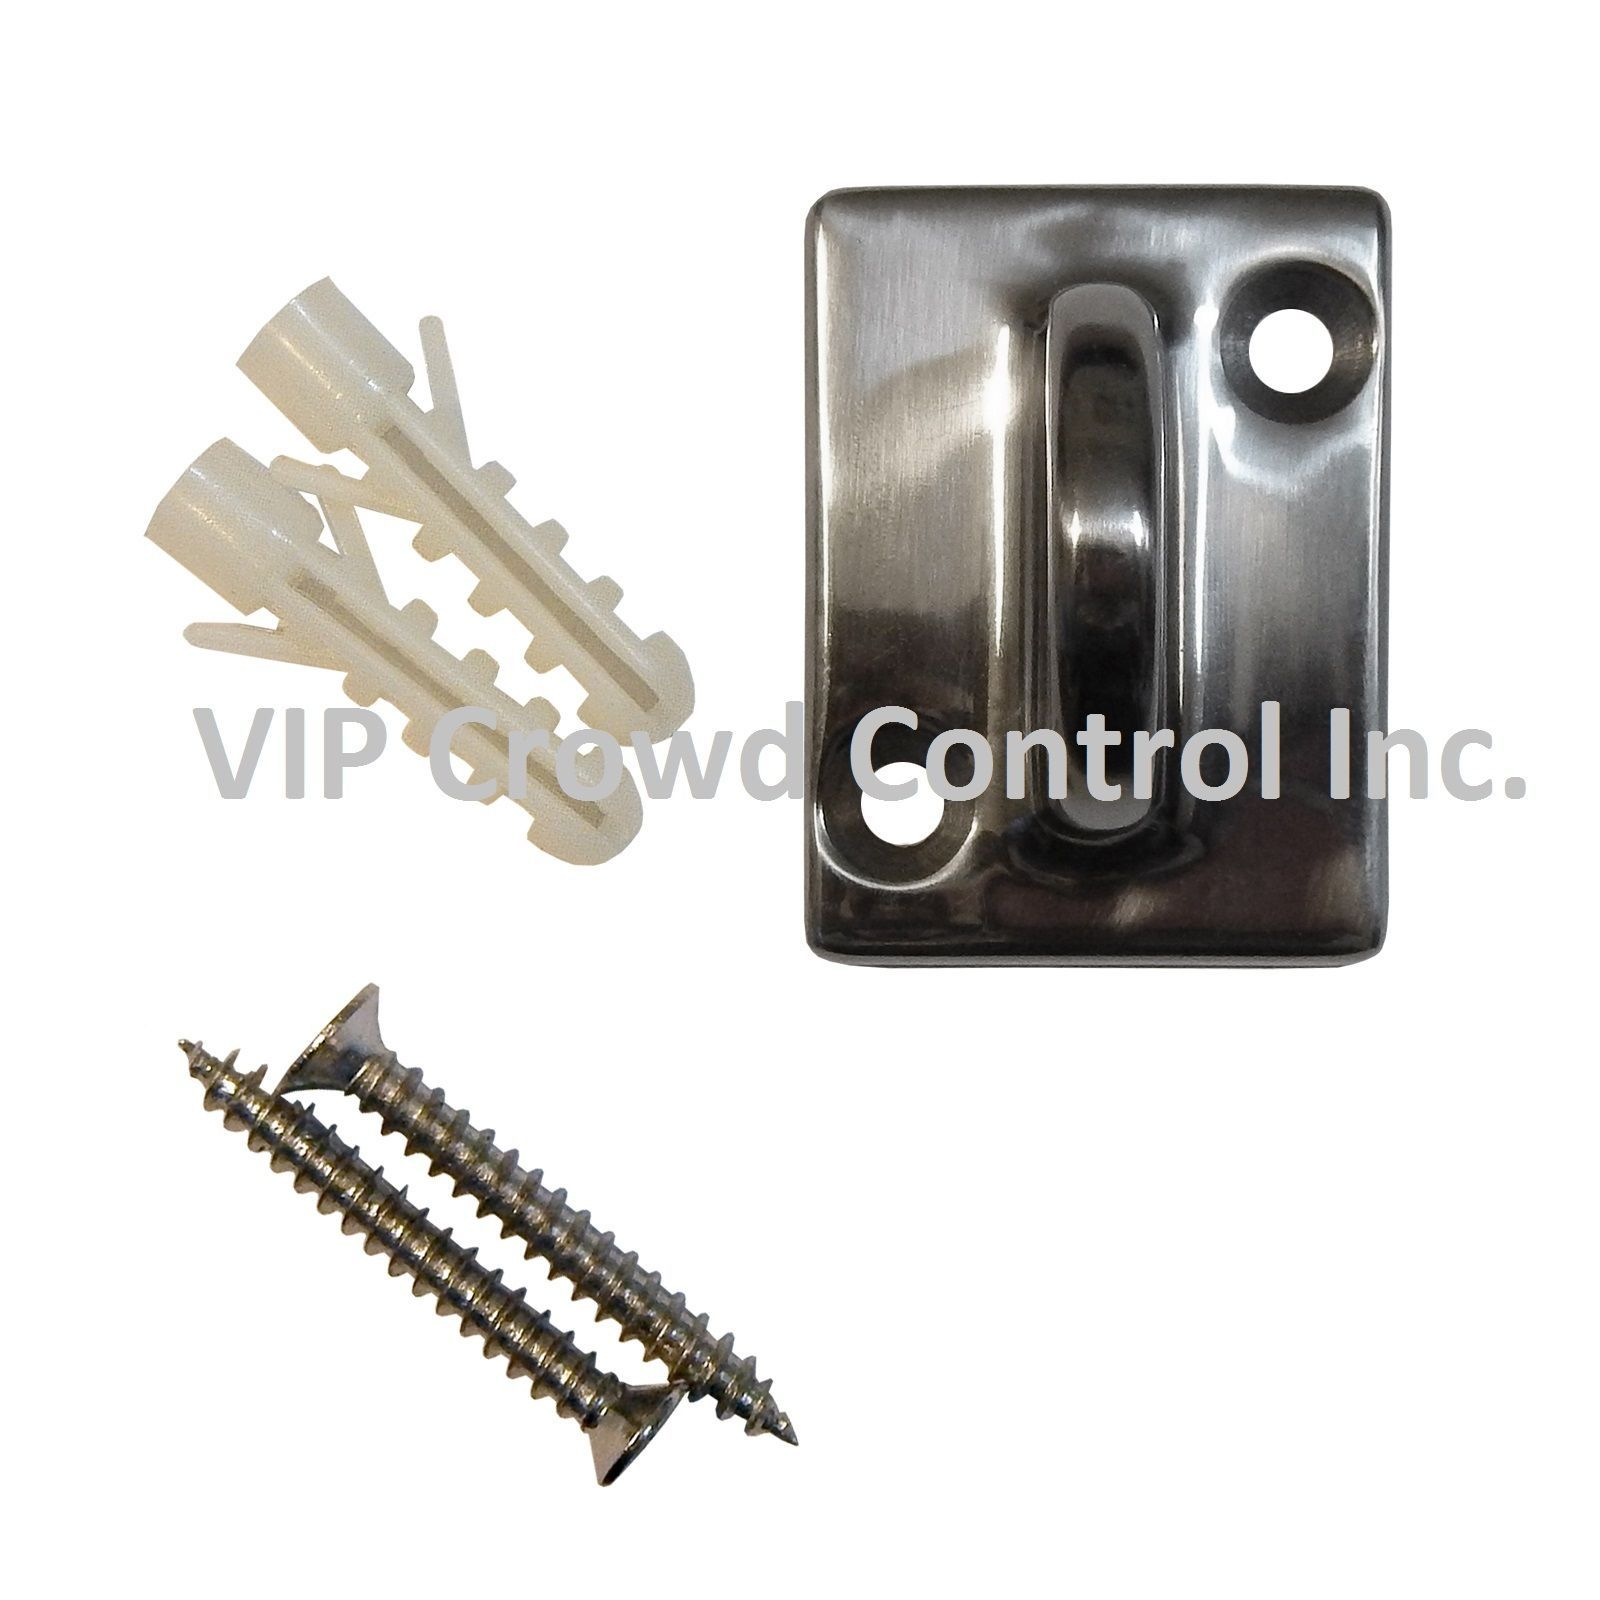 Stanchion Velour Rope + 2 pcs Wall Plates, VIP Crowd Control